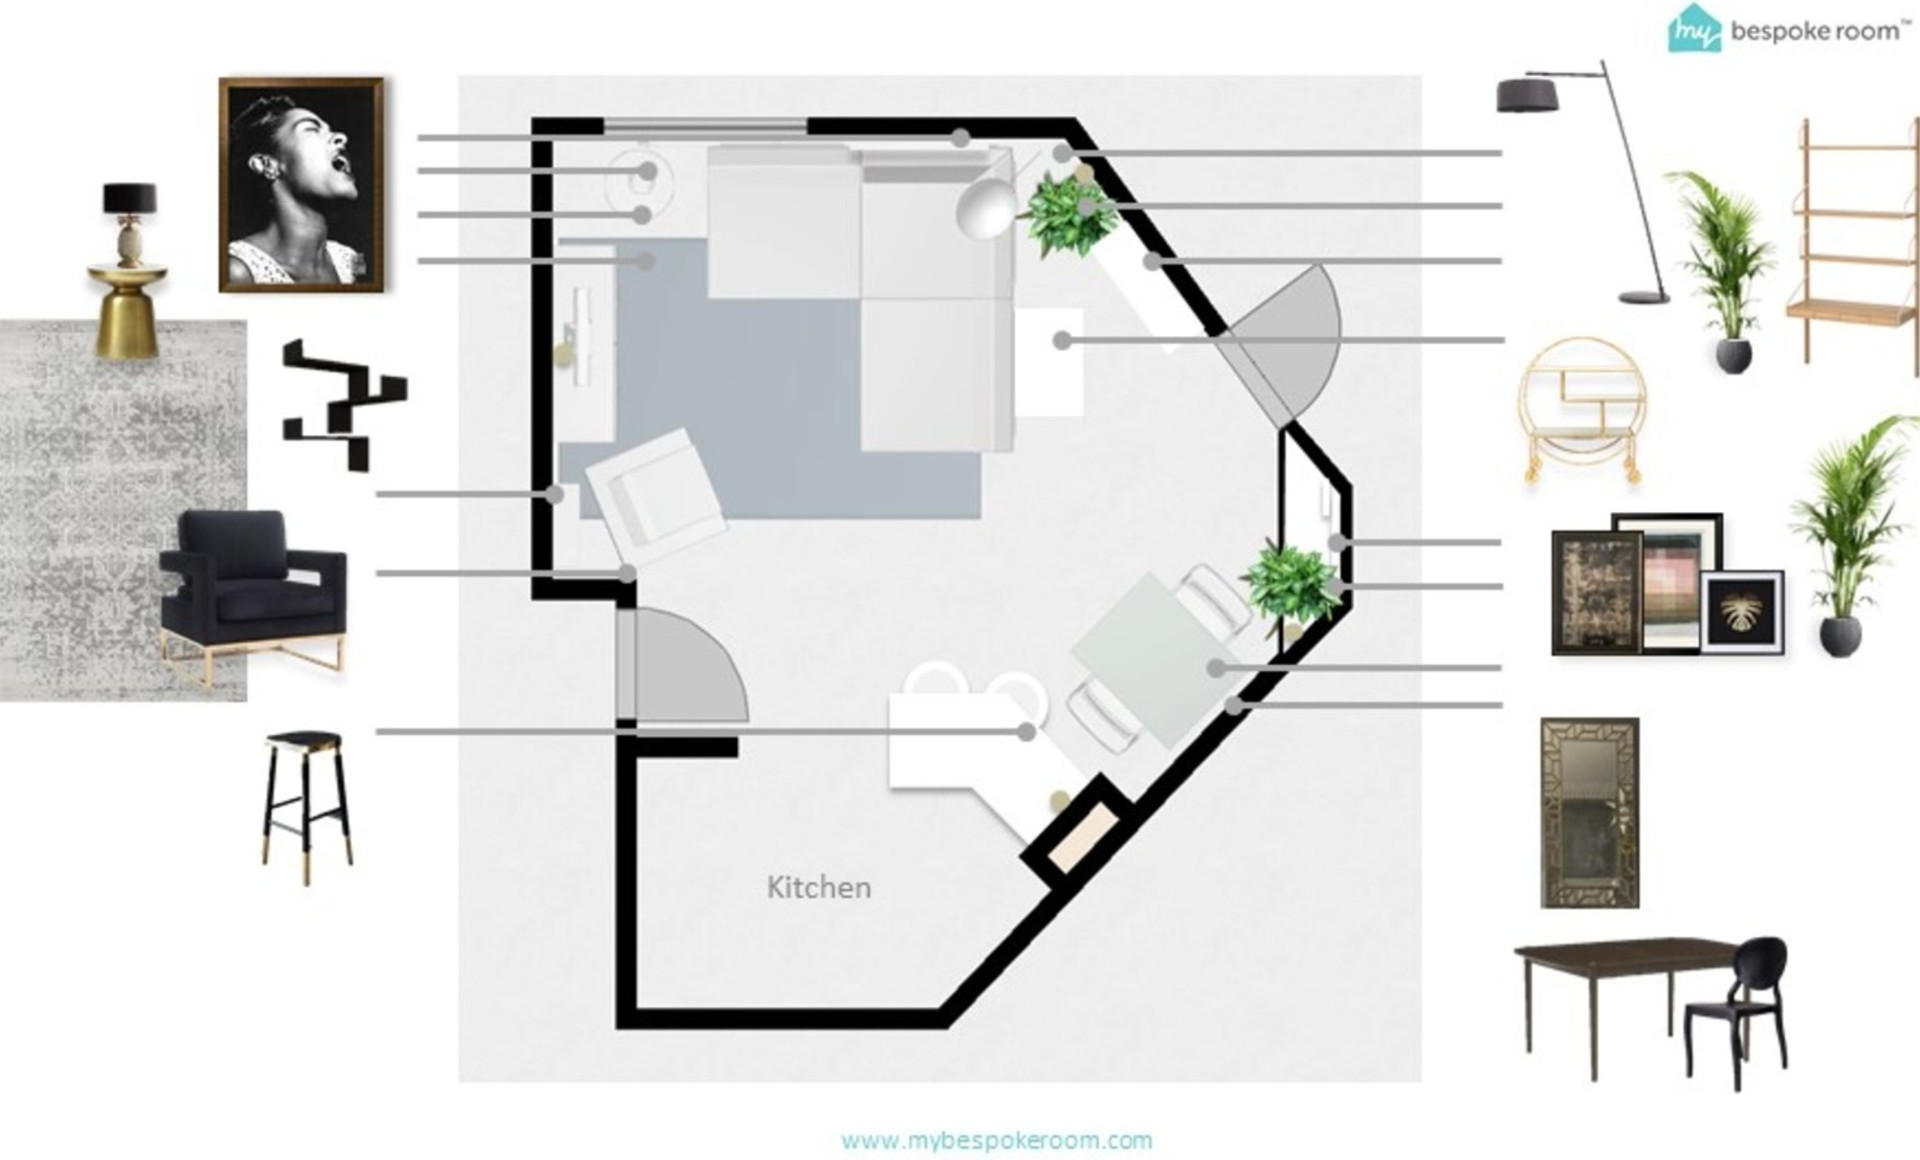 Floor plan showing a complicated floor plan for an open living space with artwork and furniture and accessories